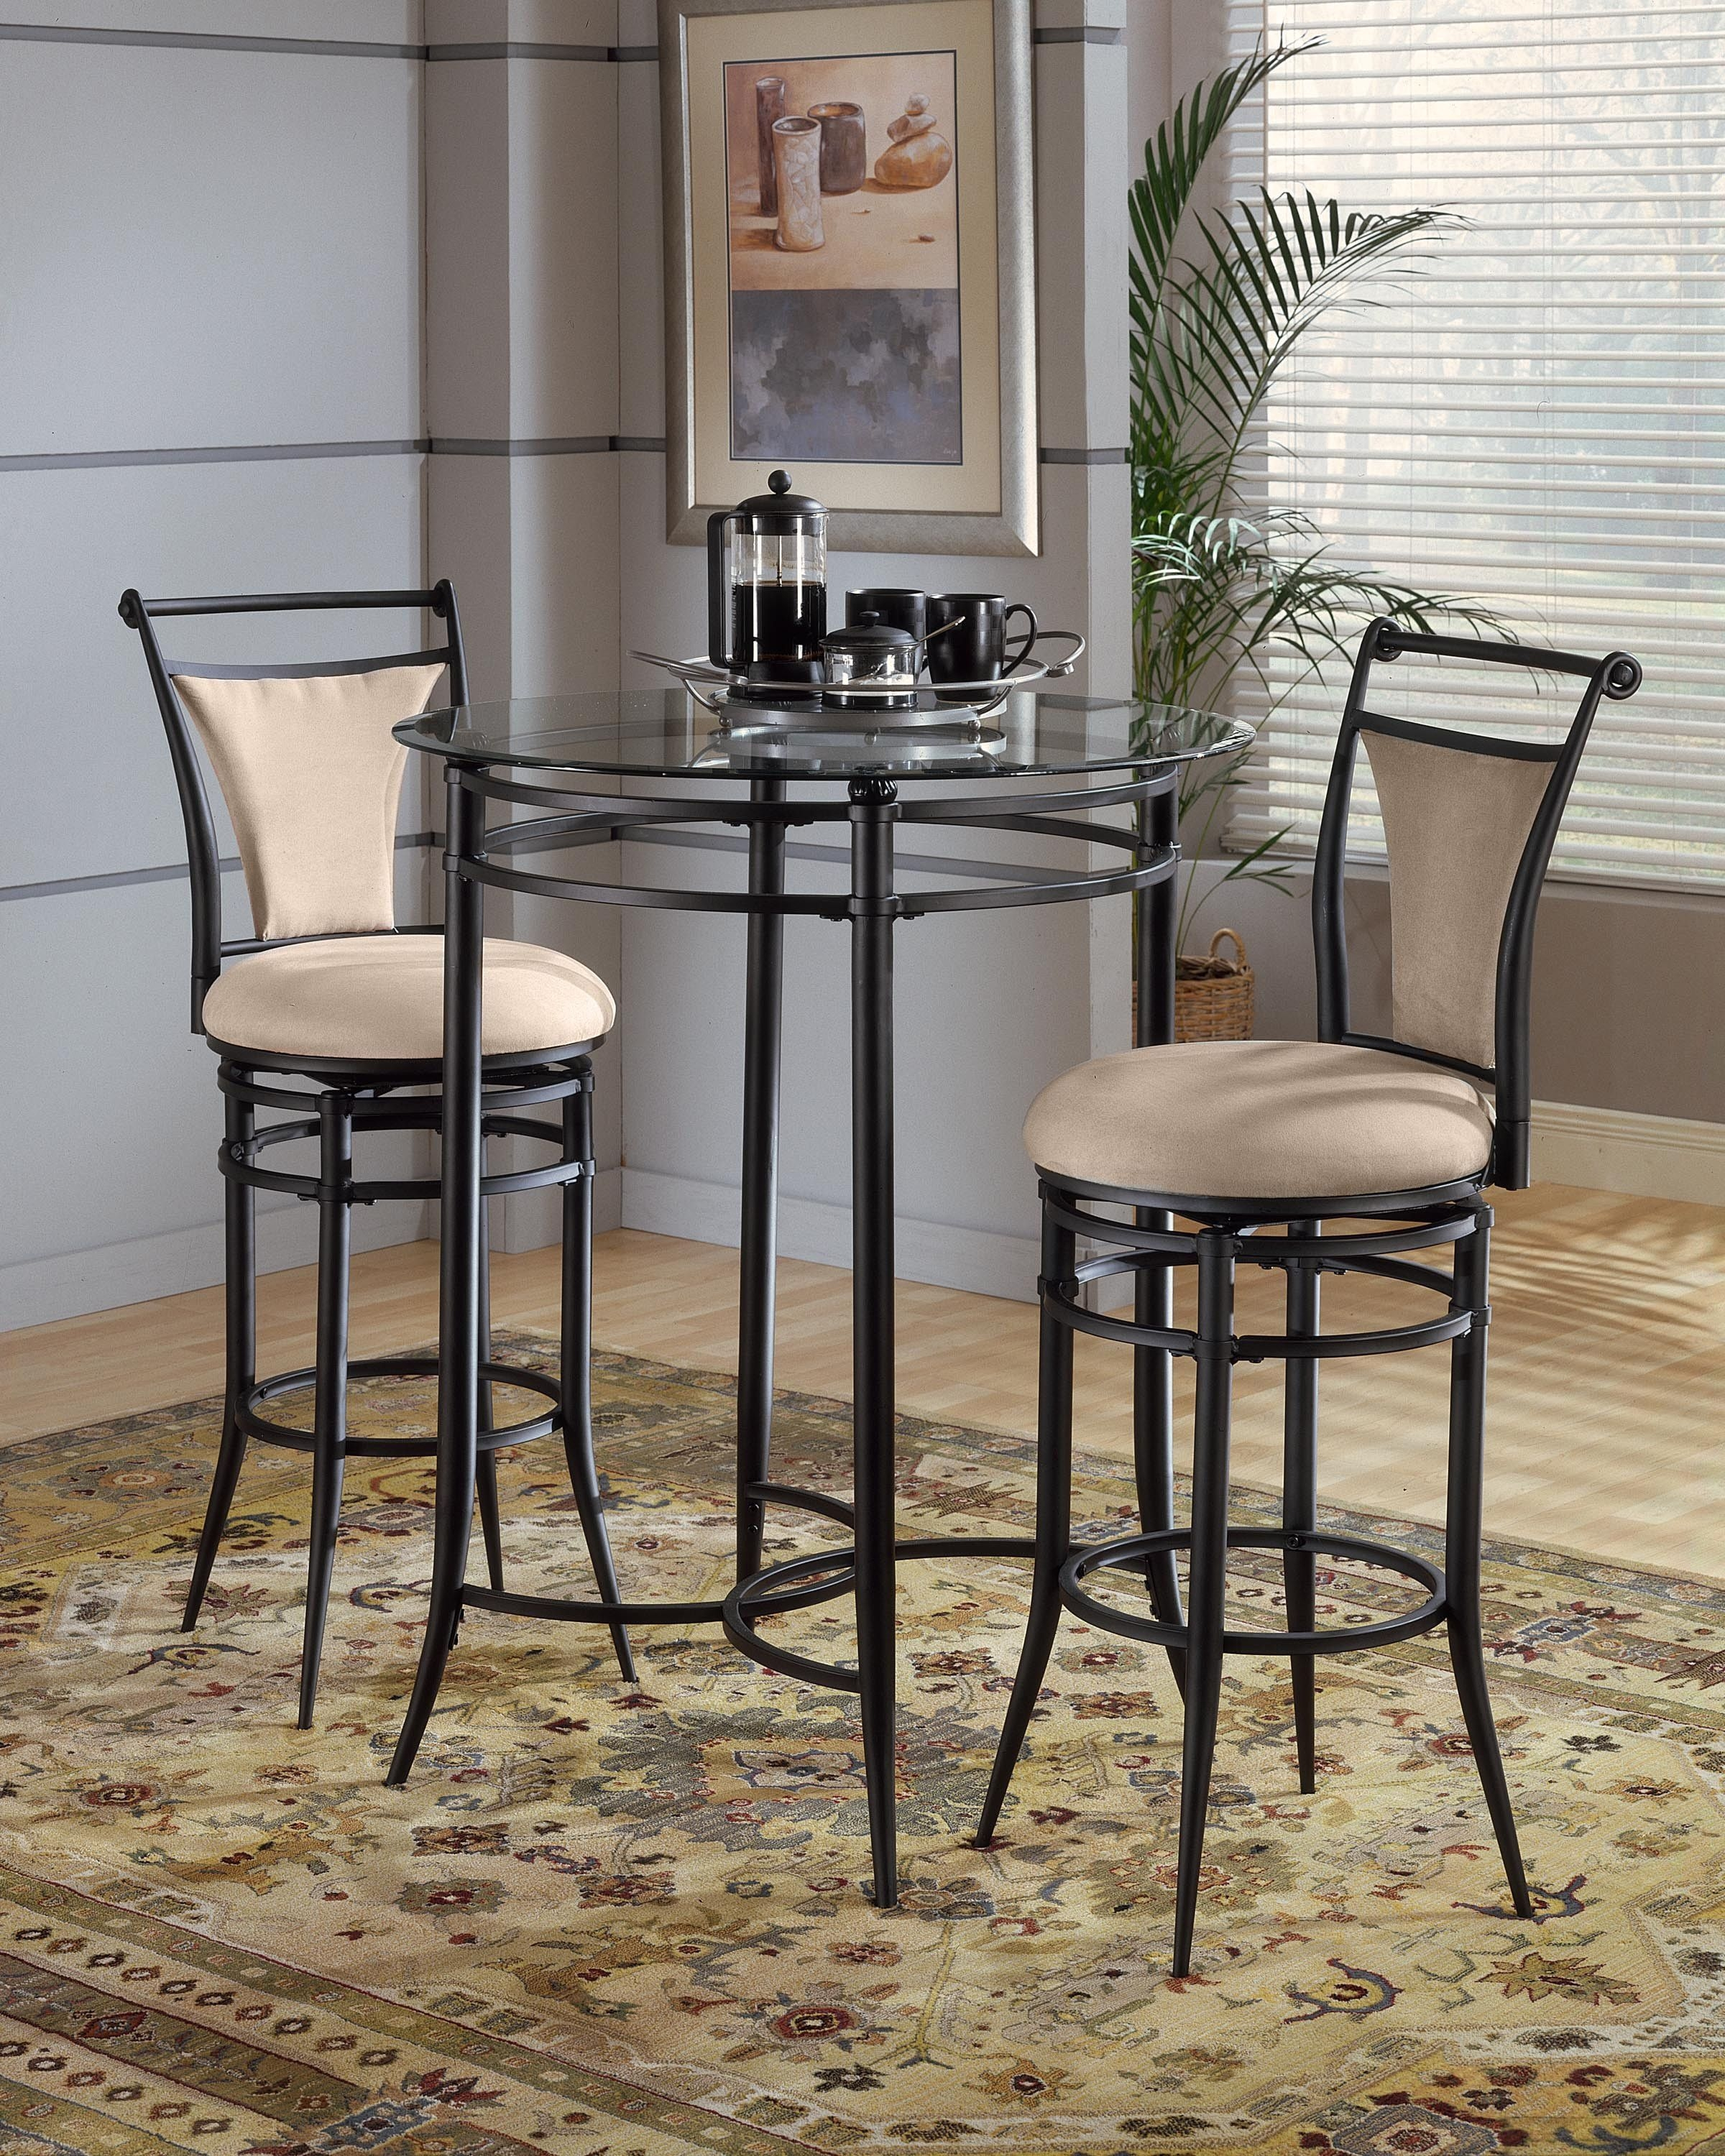 Charmant Tall Bistro Table And Chairs